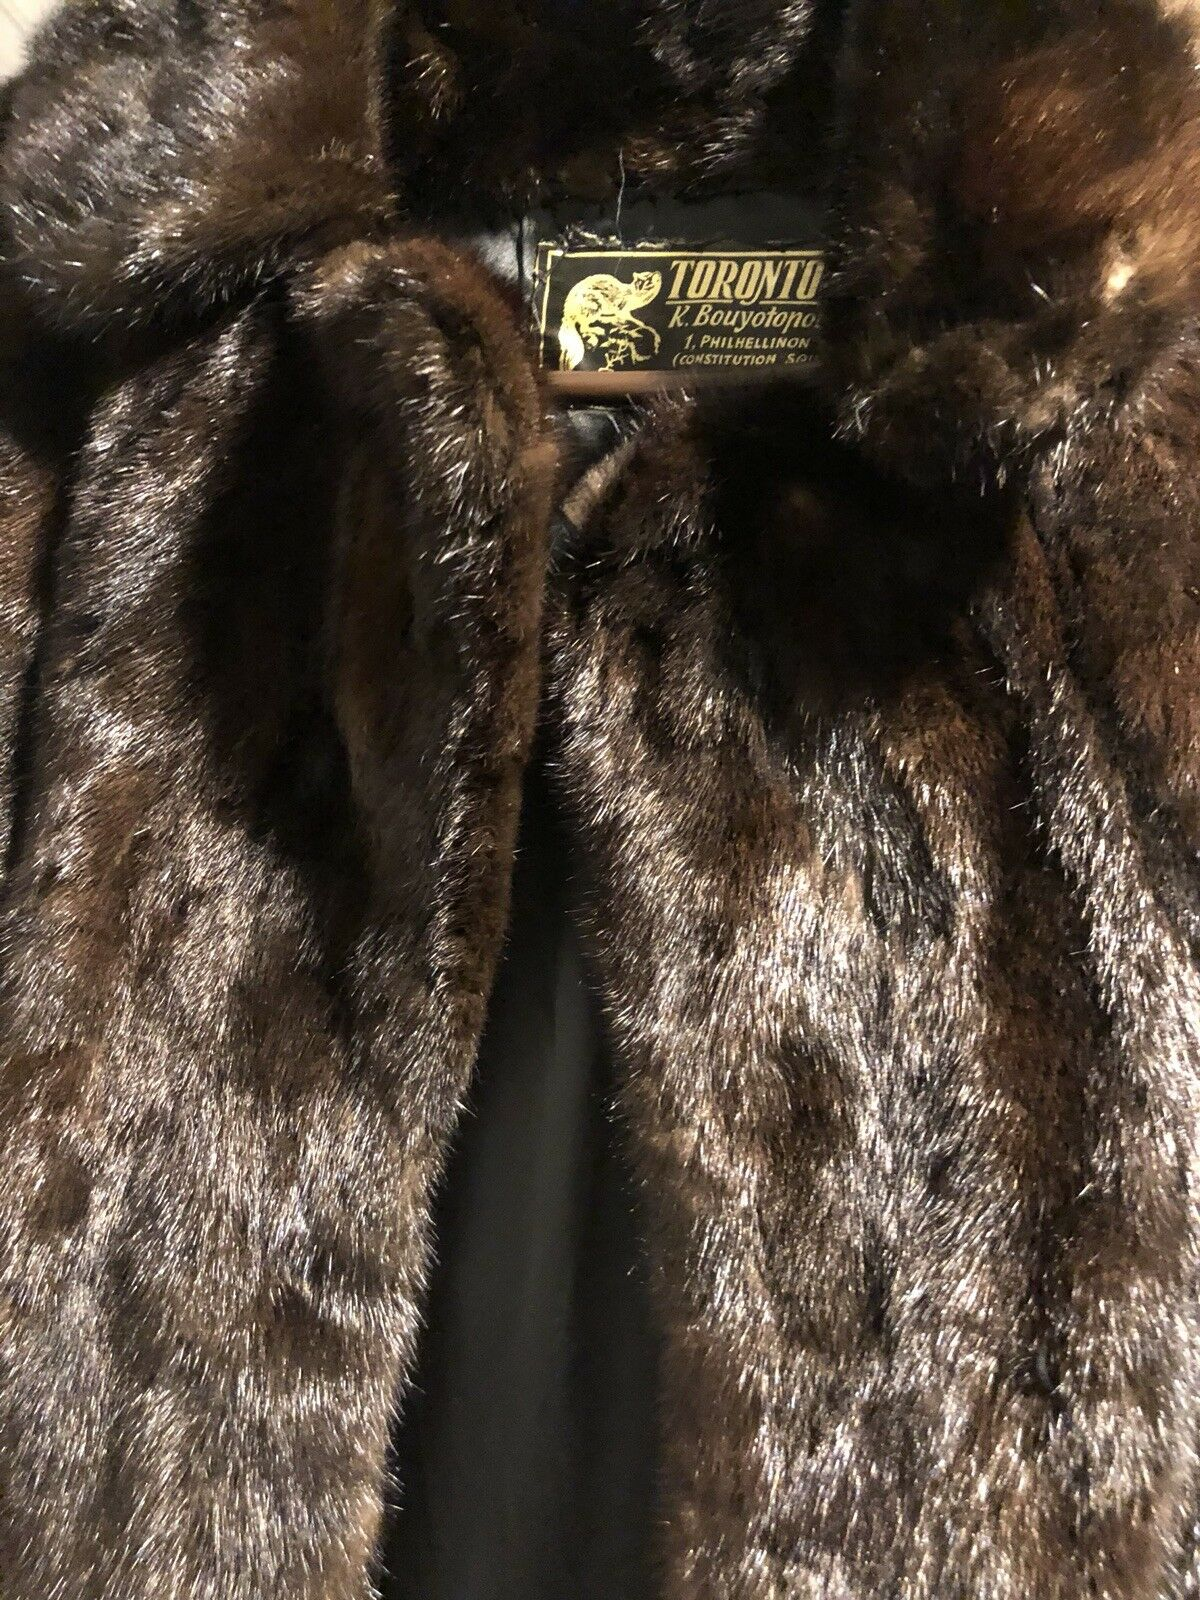 Tgoldnto Furs Brown Mink Fur Coat Size Small- Excellent Condition -  700